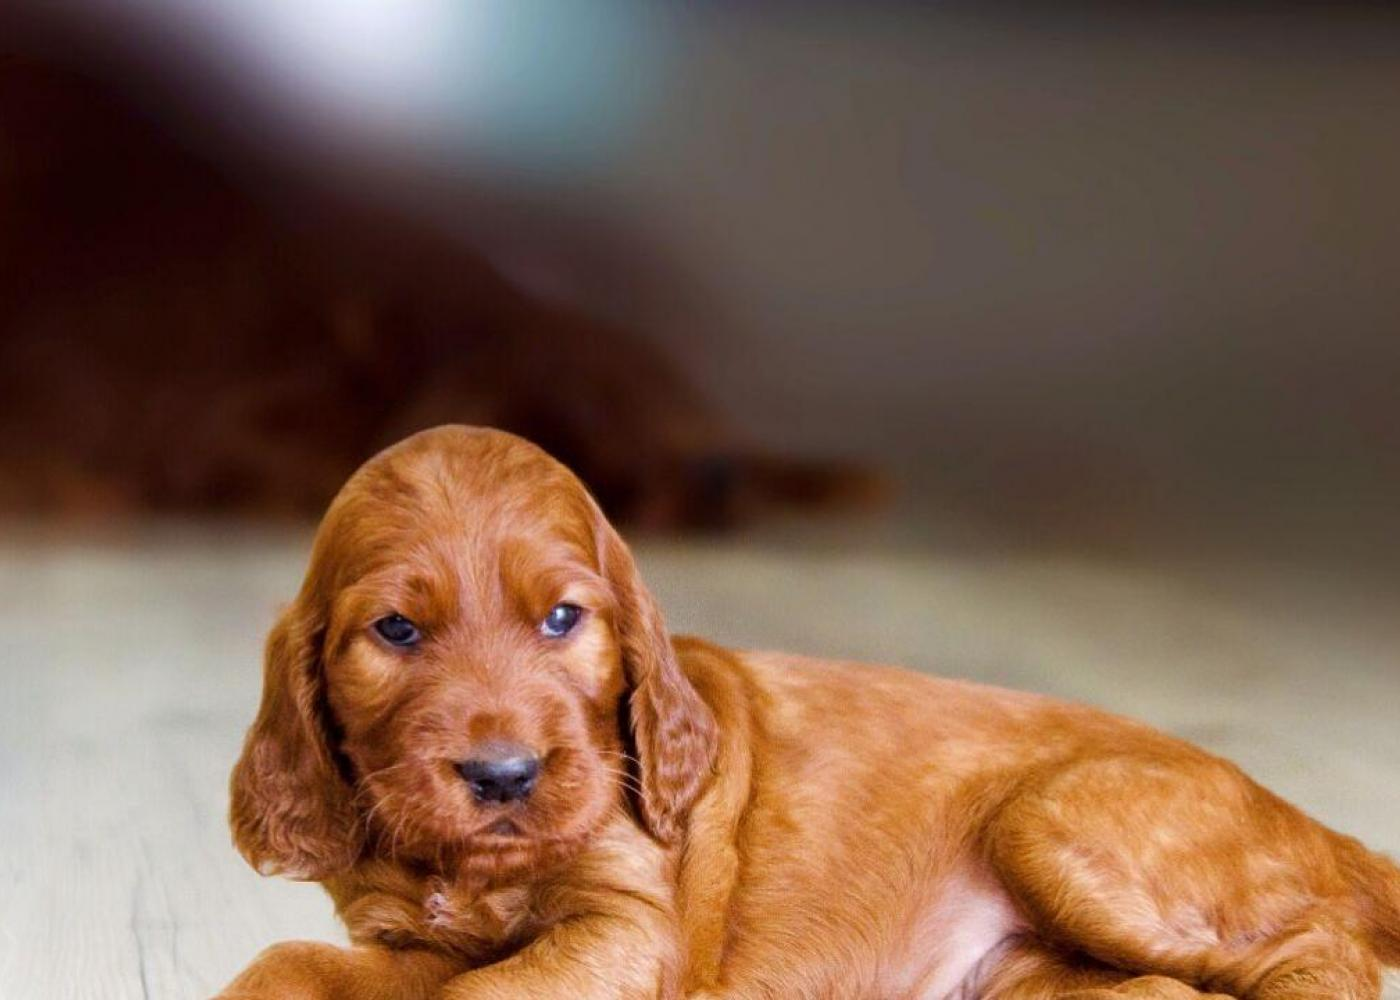 The Setter puppy